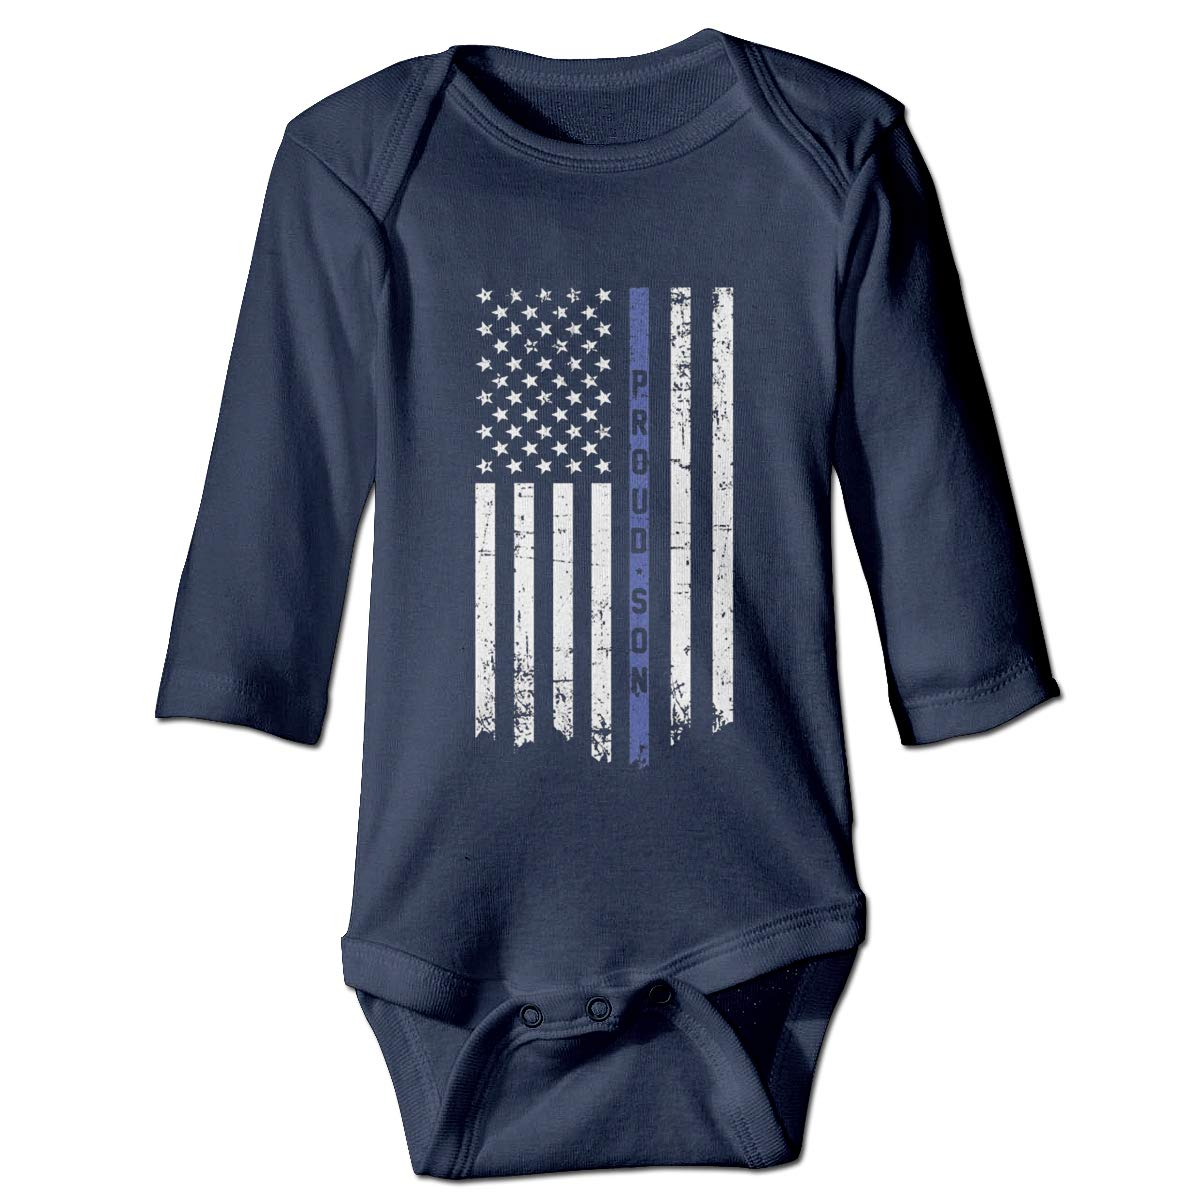 Olyha Proud Son Thin Blue Line Flag Infant Baby Long Sleeve Onesies Bodysuit Soft Romper Outfits